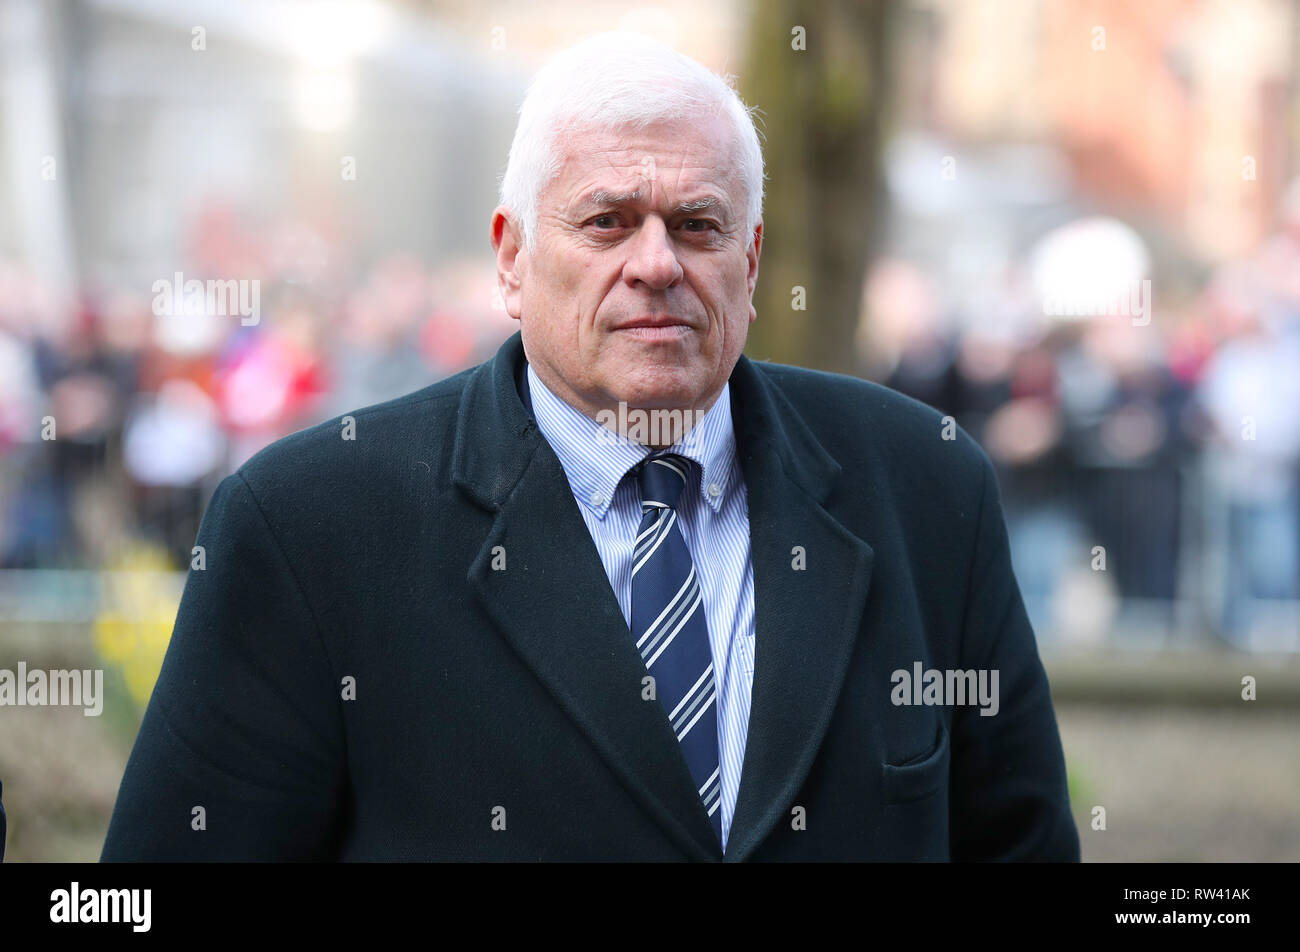 Peter Ridsdale arrives at the funeral service for Gordon Banks at Stoke Minster. - Stock Image